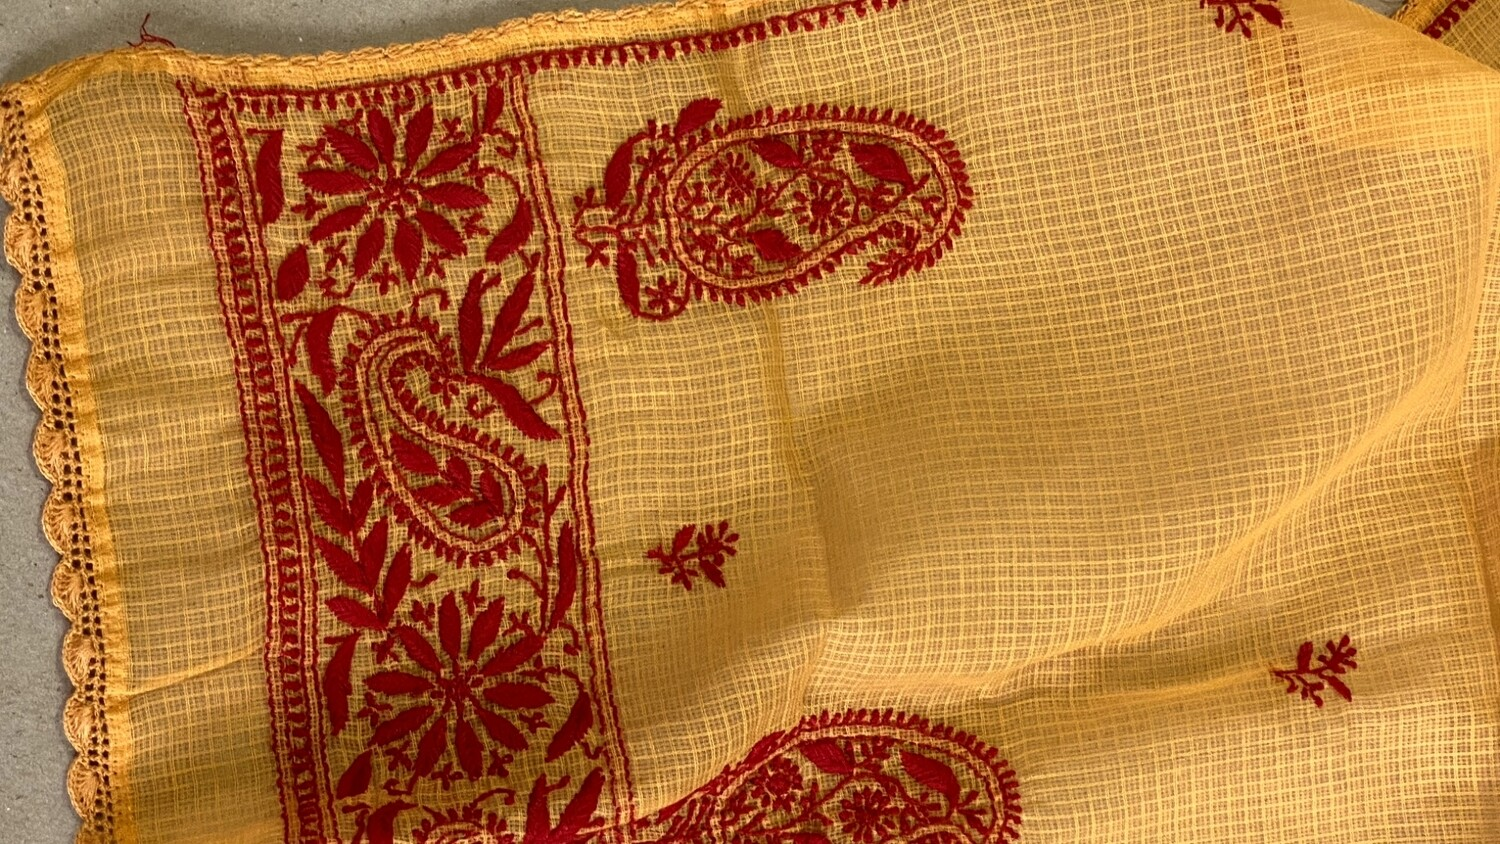 Red hand embroidery on orange kota stole